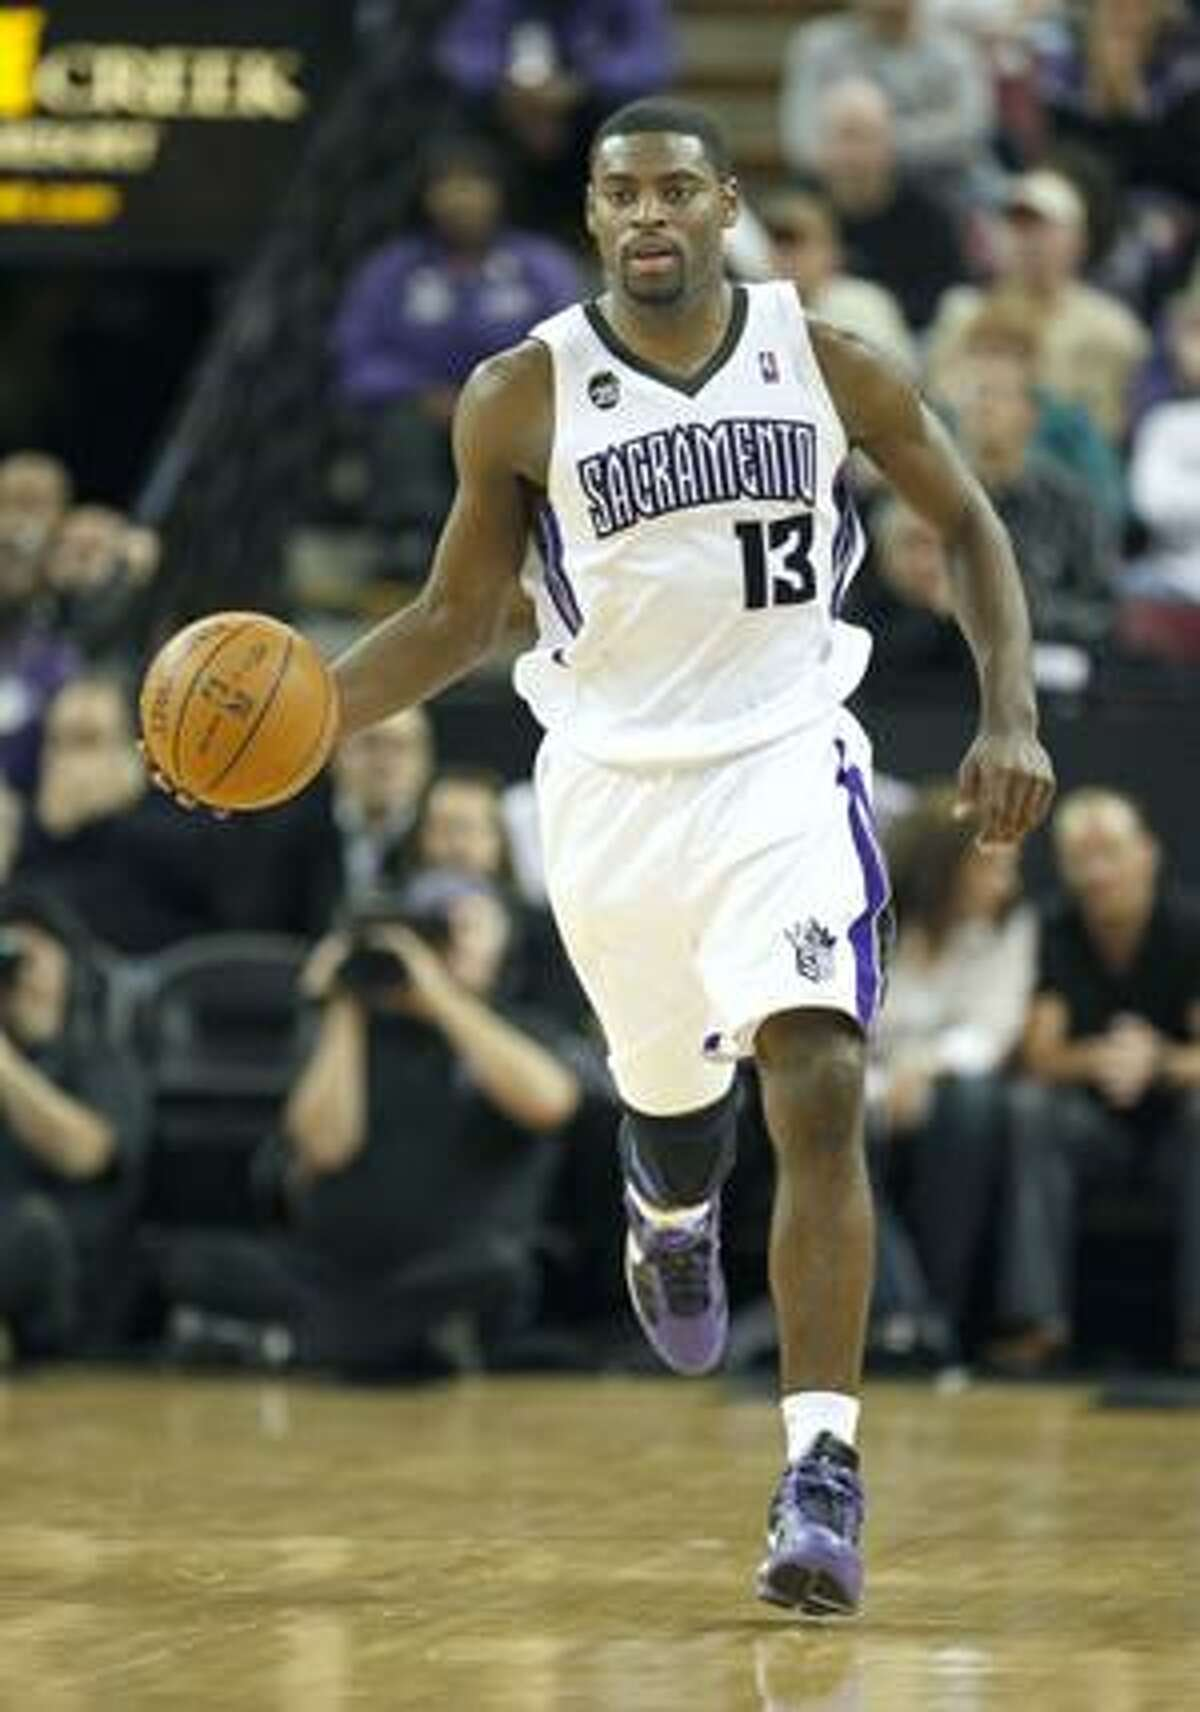 AP This April 12, file photo shows Sacramento Kings guard Tyreke Evans bringing the ball up court against the Houston Rockets during the second half of a game in Sacramento, Calif. Evans beat out Golden State's Stephen Curry and Milwaukee's Brandon Jennings to win the NBA Rookie of the Year award, Thursday.